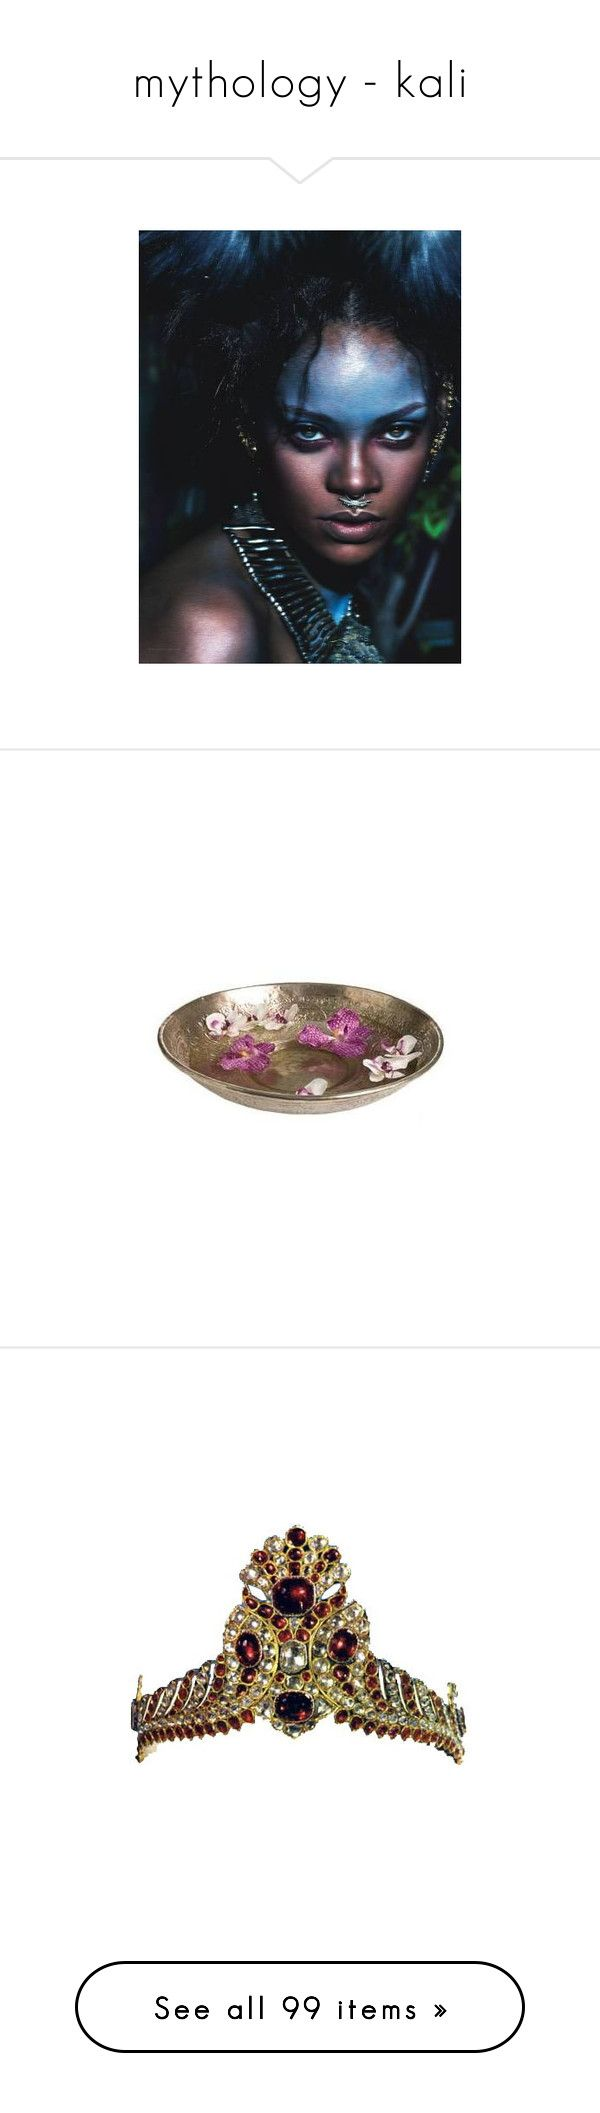 """mythology - kali"" by troiaofthemyscira ❤ liked on Polyvore featuring rihanna, riri, home, home decor, fillers, decor, bowl, flowers, accessories and crowns"